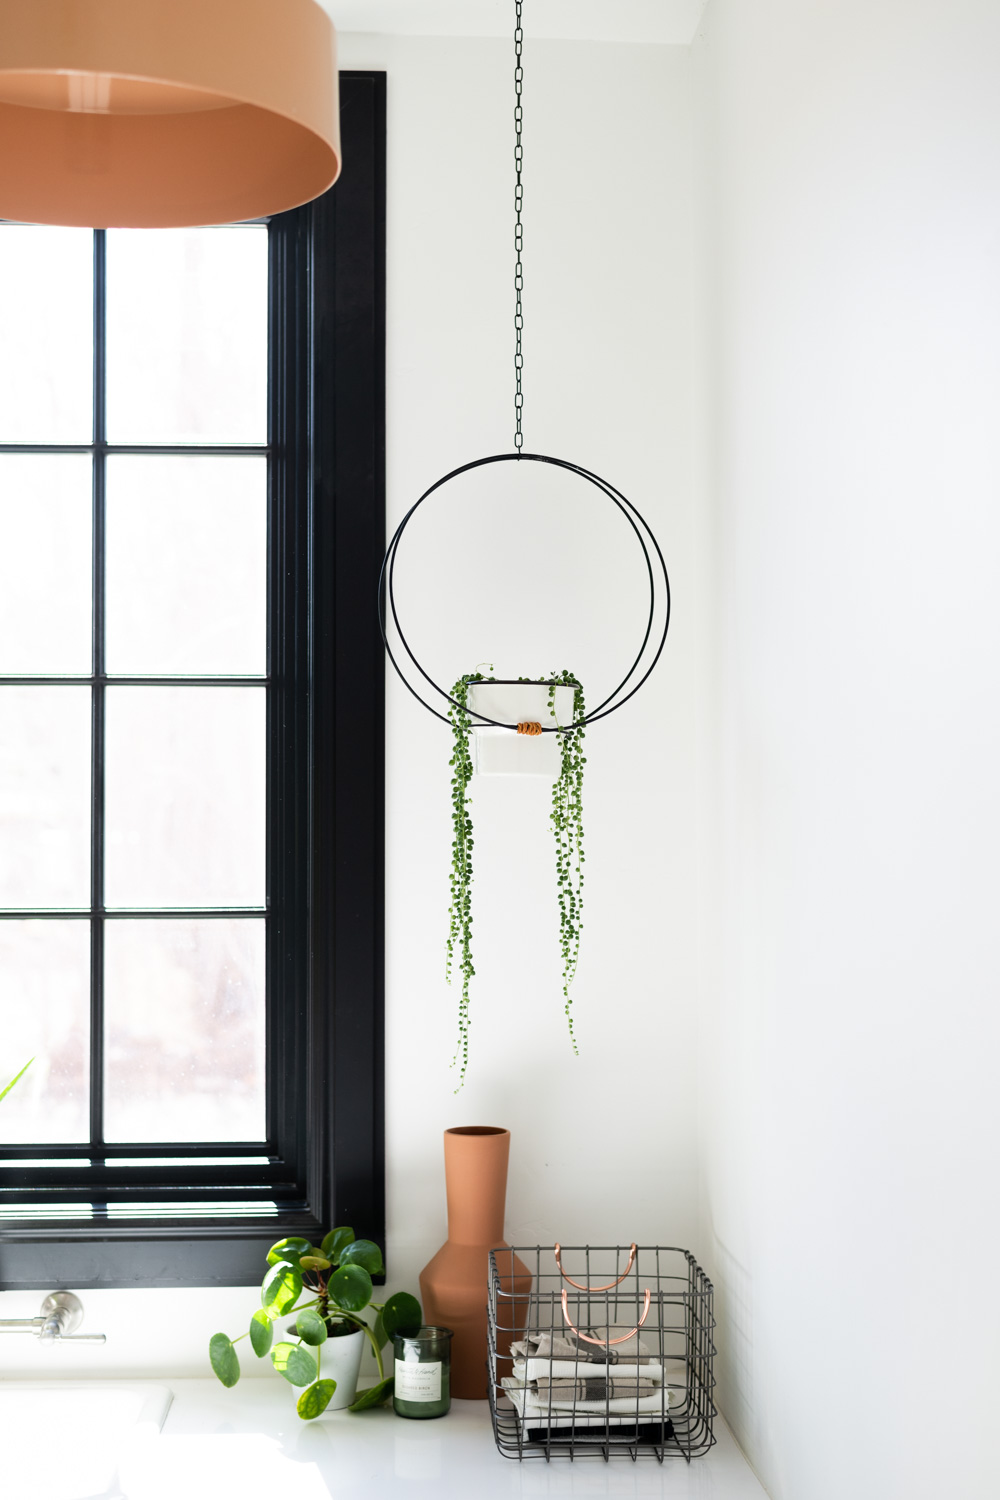 Black modern hanging planter with white pot and string of pearls succulent. Black window frame, wire basket with pilea and terra cotta vase